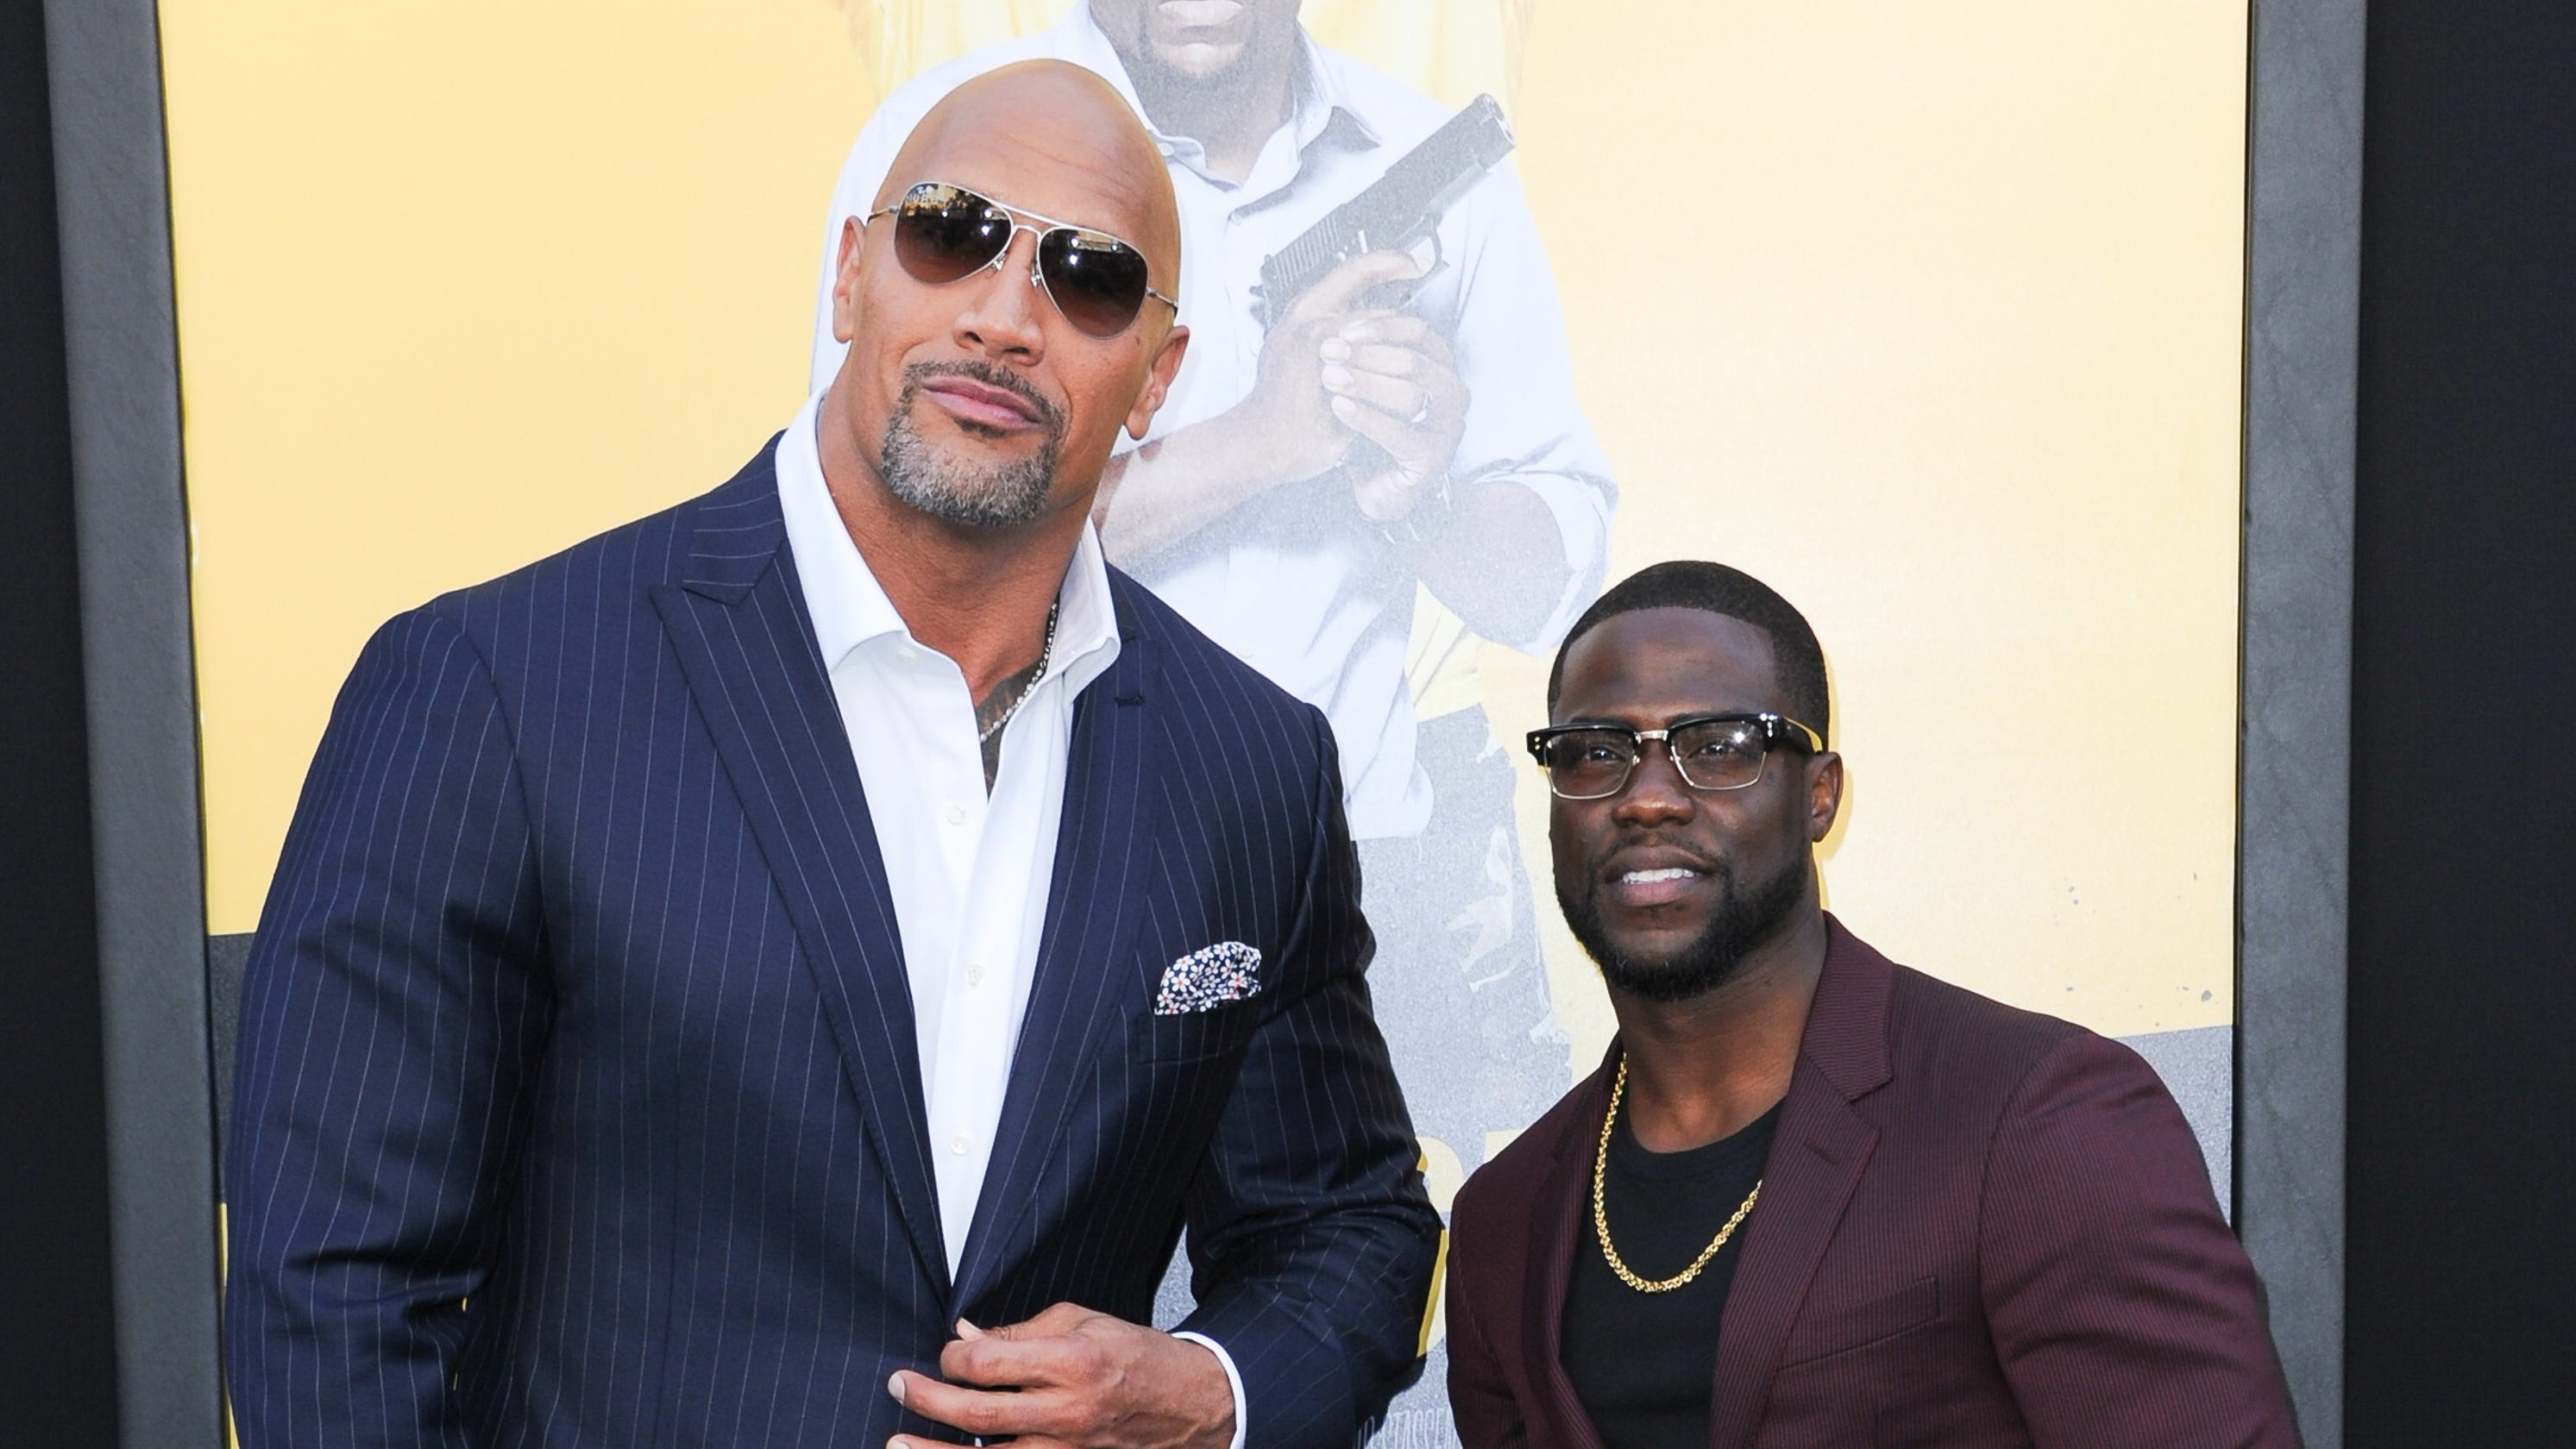 'He's a lucky man': Dwayne 'The Rock' Johnson says Kevin Hart is 'doing very well'